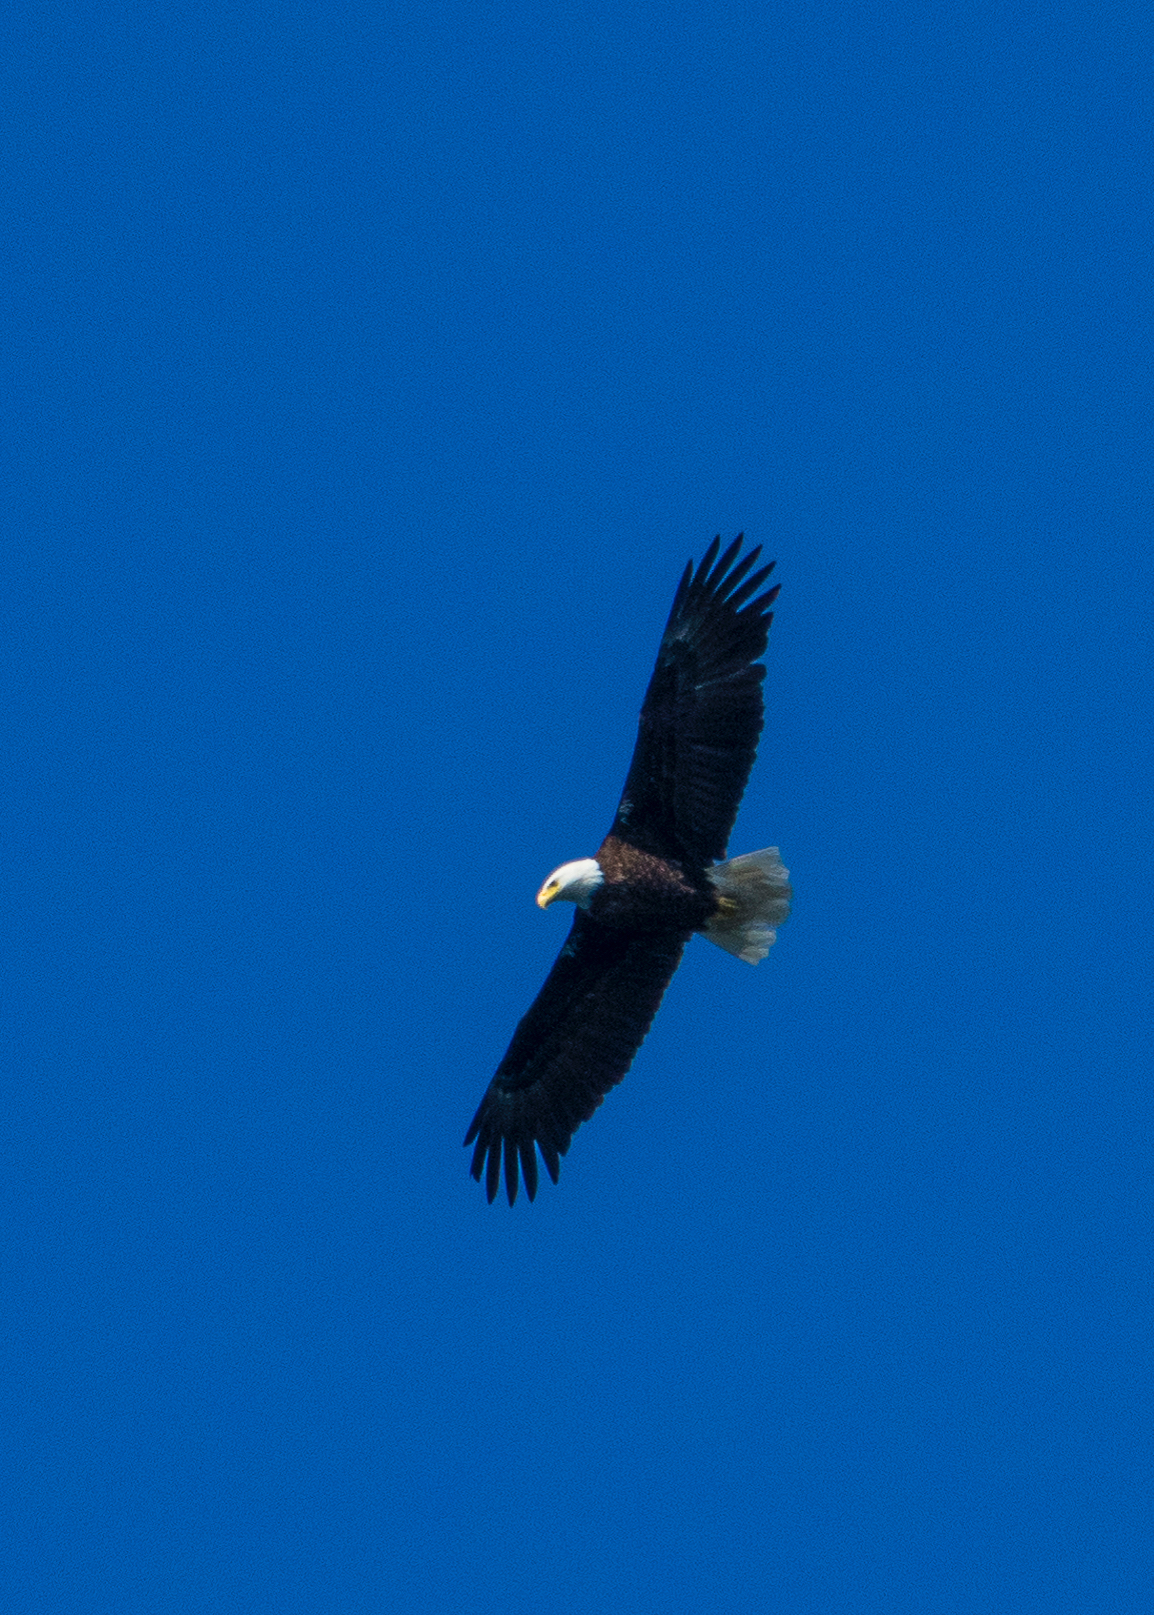 There were lots of bald eagles soaring about over the weekend.